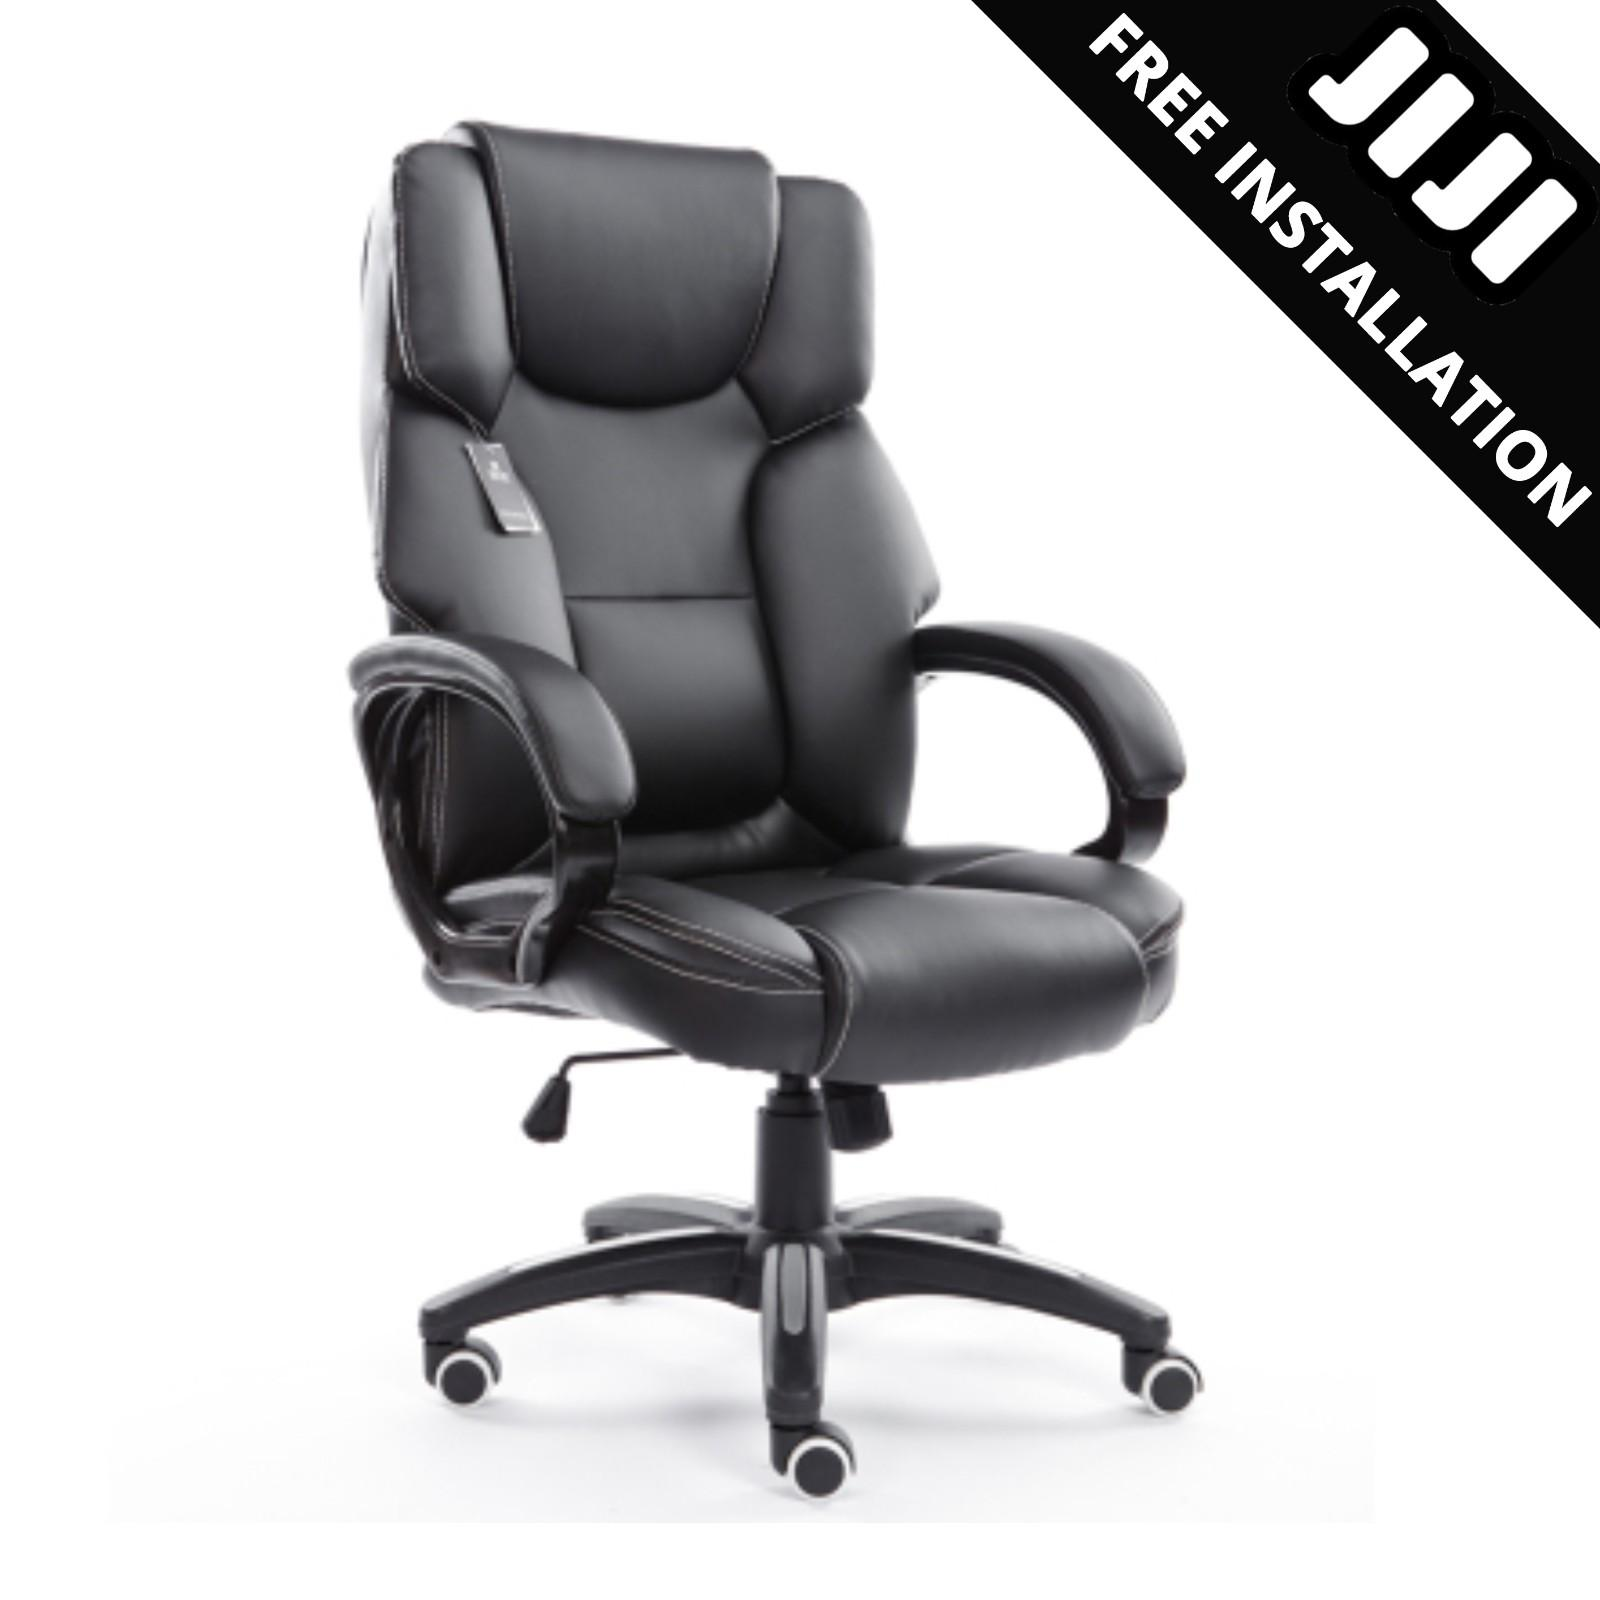 JIJI Dreamwave 8-Points Massage Office Chair (Free Installation) - Compact Massage Chairs ★Latest Technology ★Blood Circulation / Free 12 Months Warranty (SG) Singapore